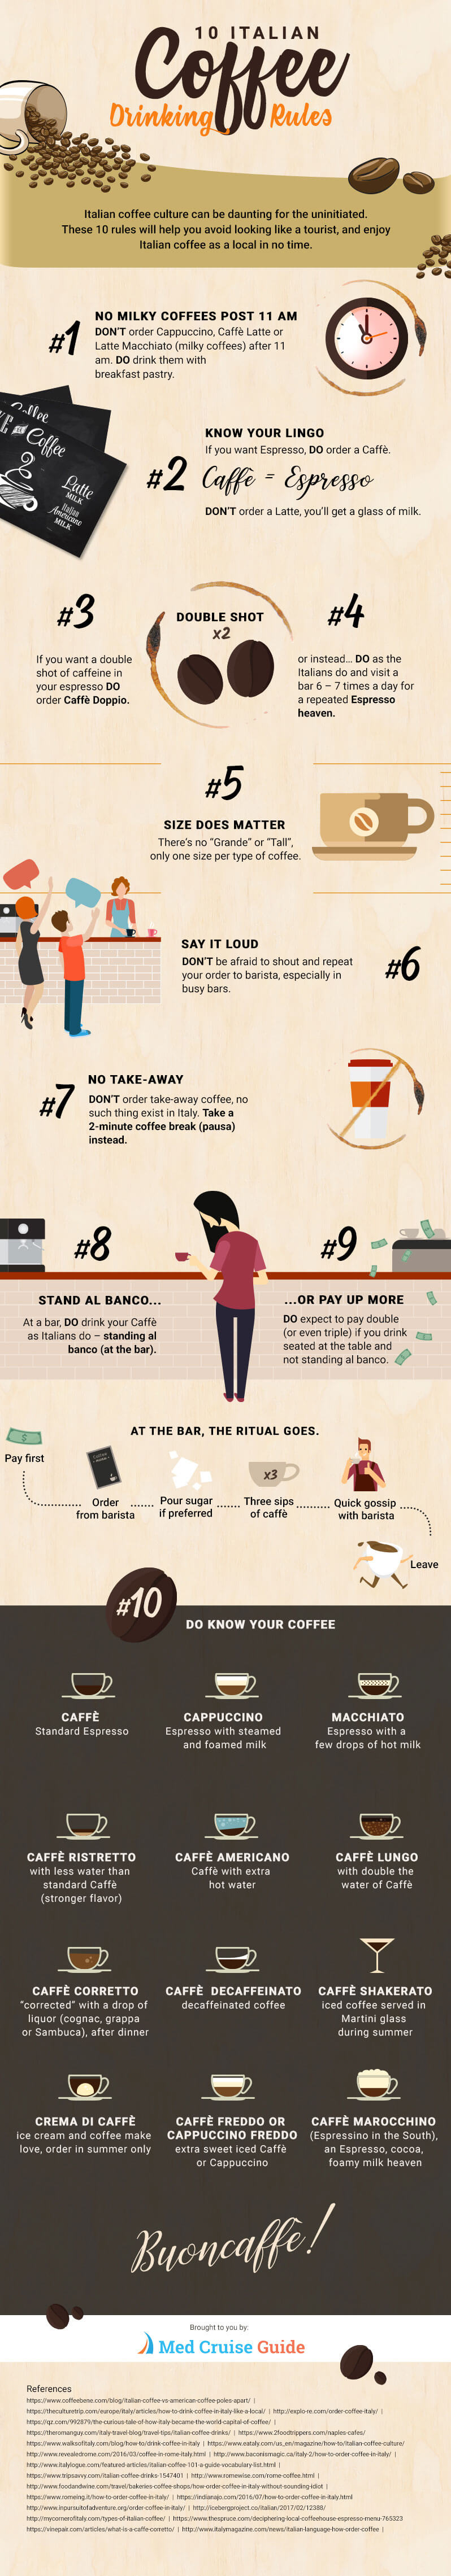 10 Italian Coffee Drinking Rules Infographic